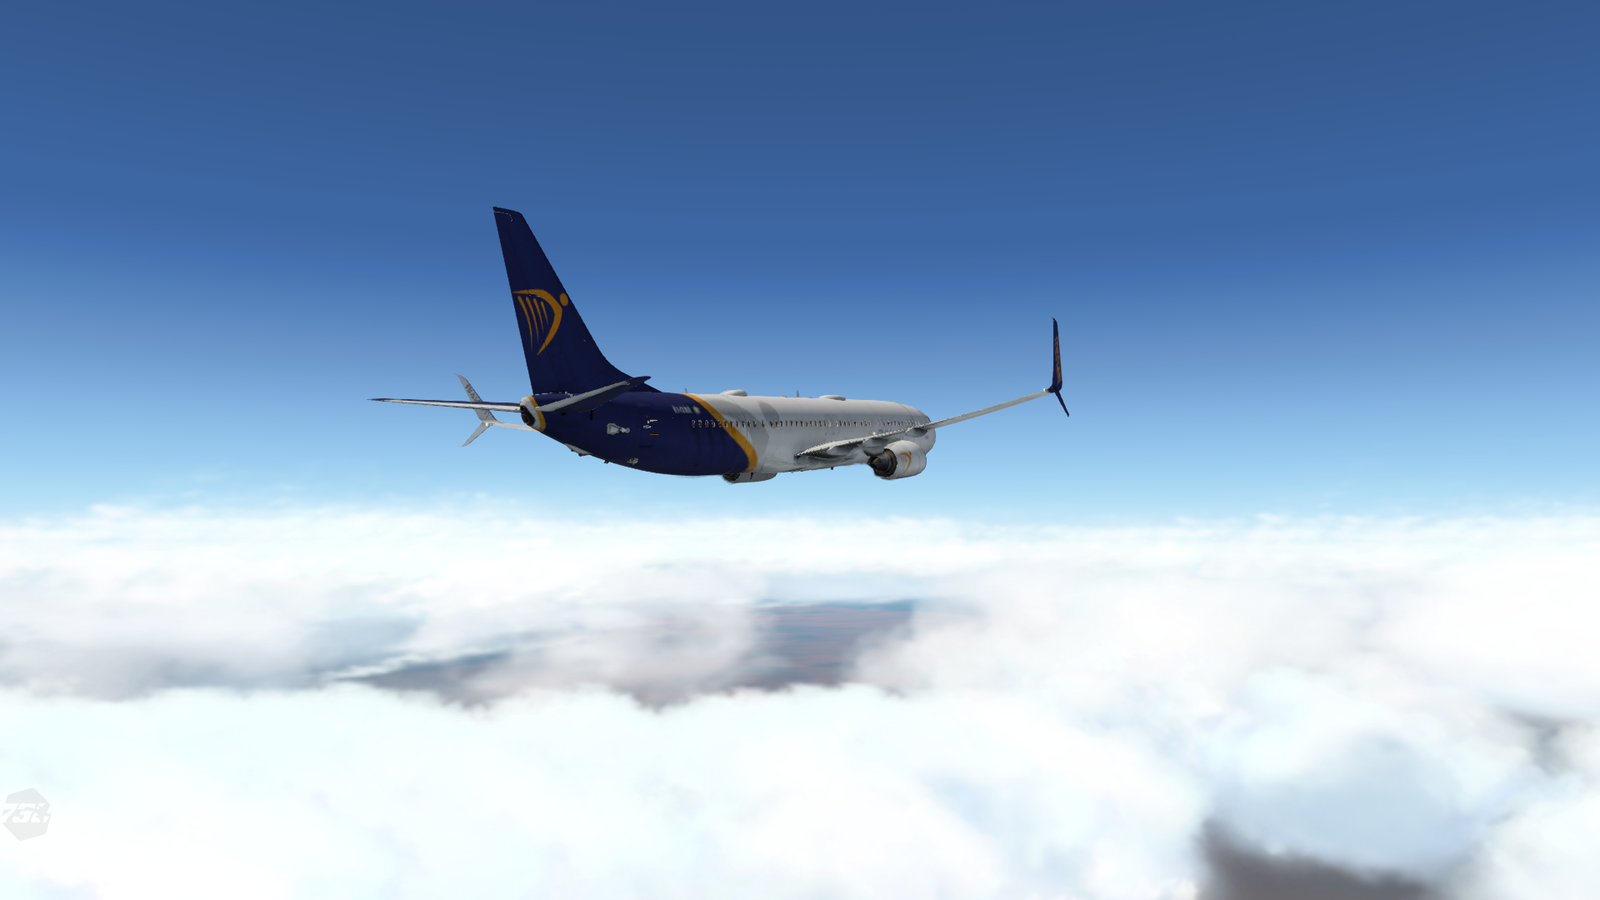 (Fictional) Ryanair 737-900 Livery